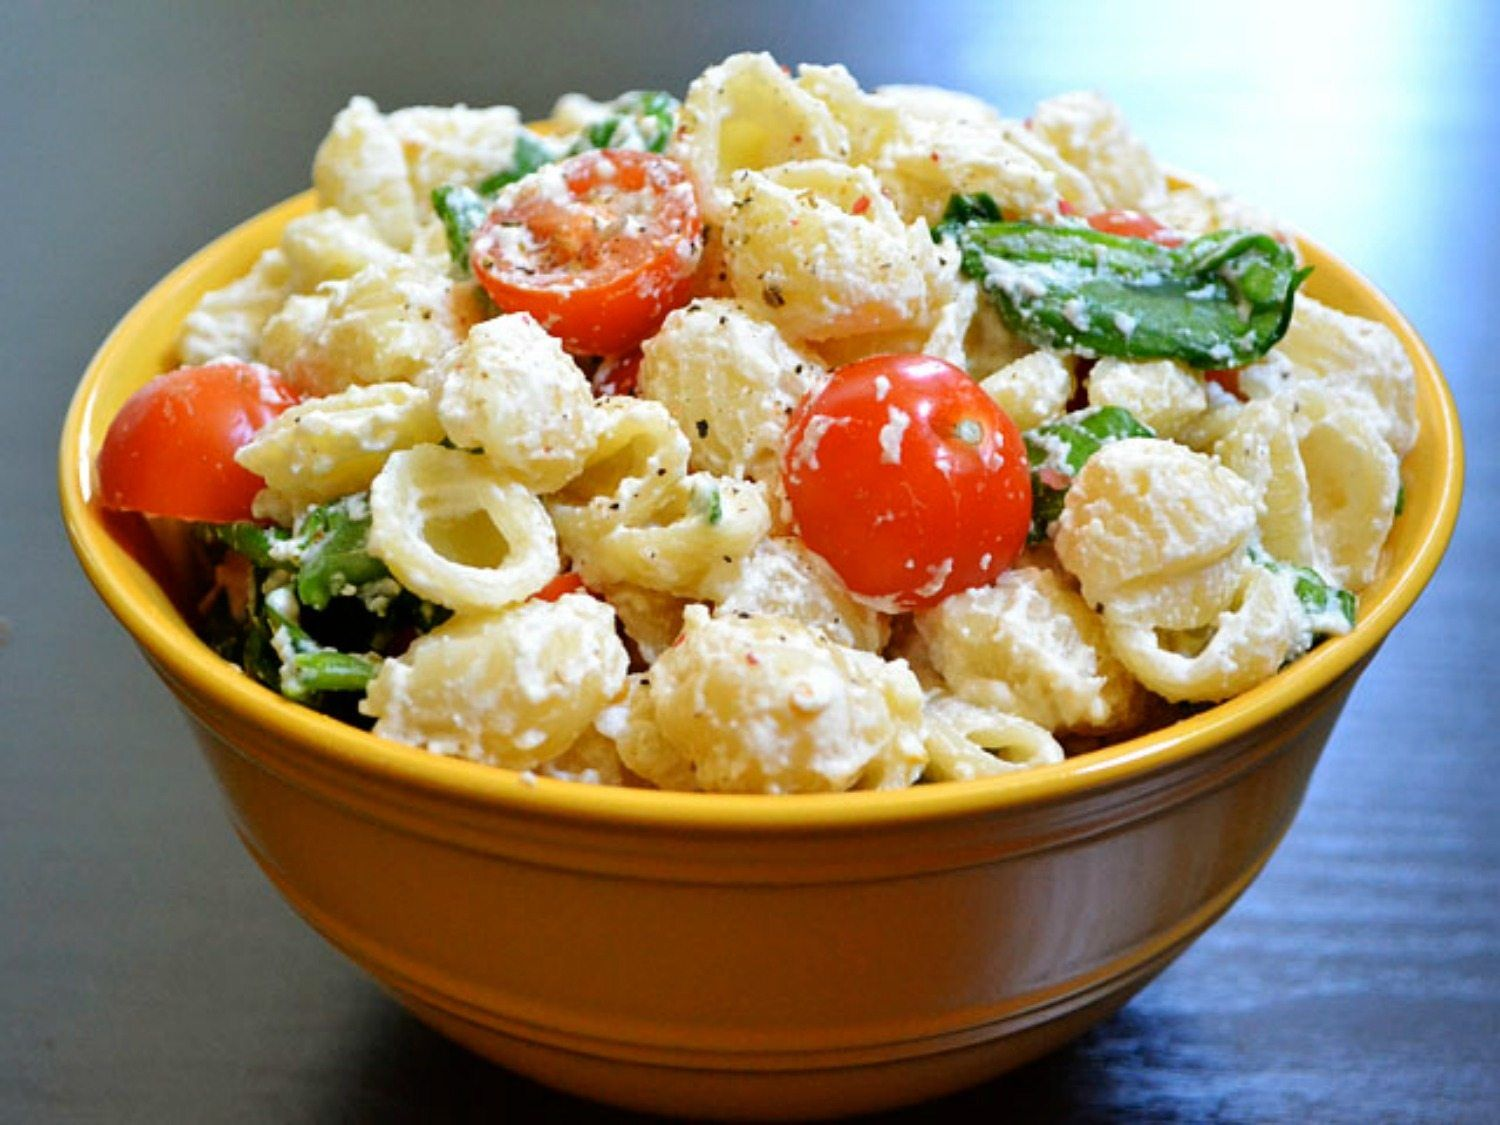 This Is The Best Pasta Salad Recipe Ever According To Pinterest Recipes Roasted Garlic Pasta Salad Best Pasta Salad